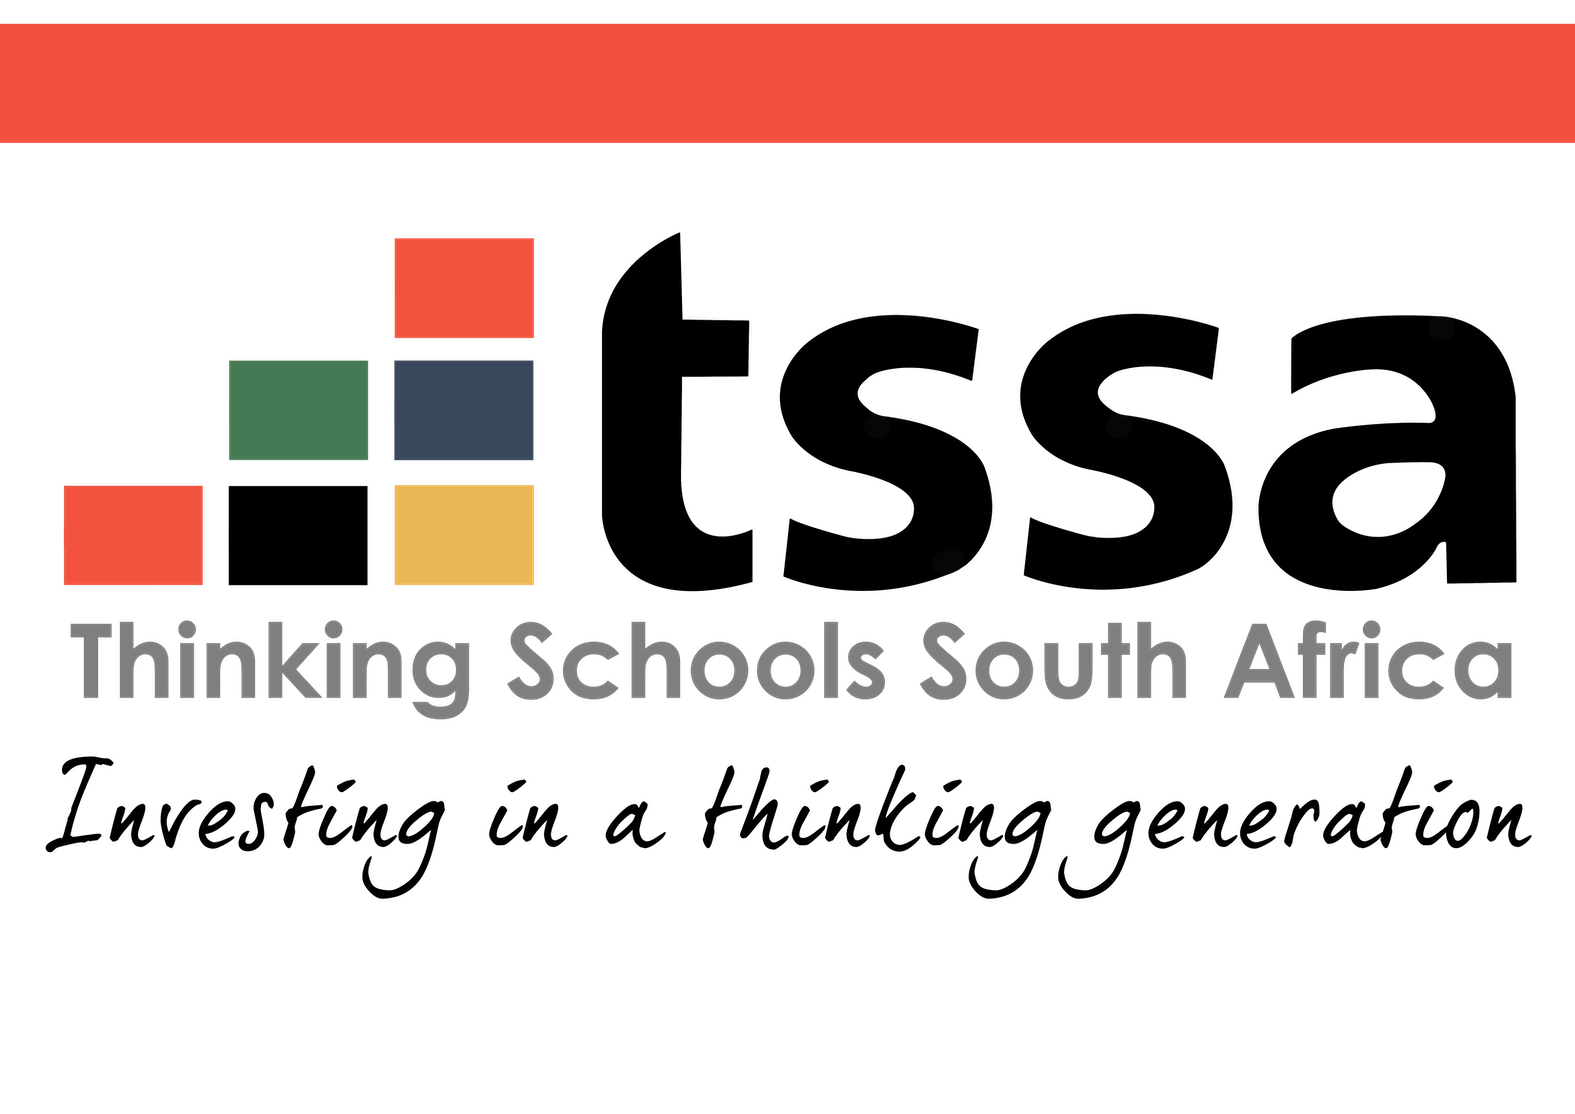 Thinking Schools South Africa Logo